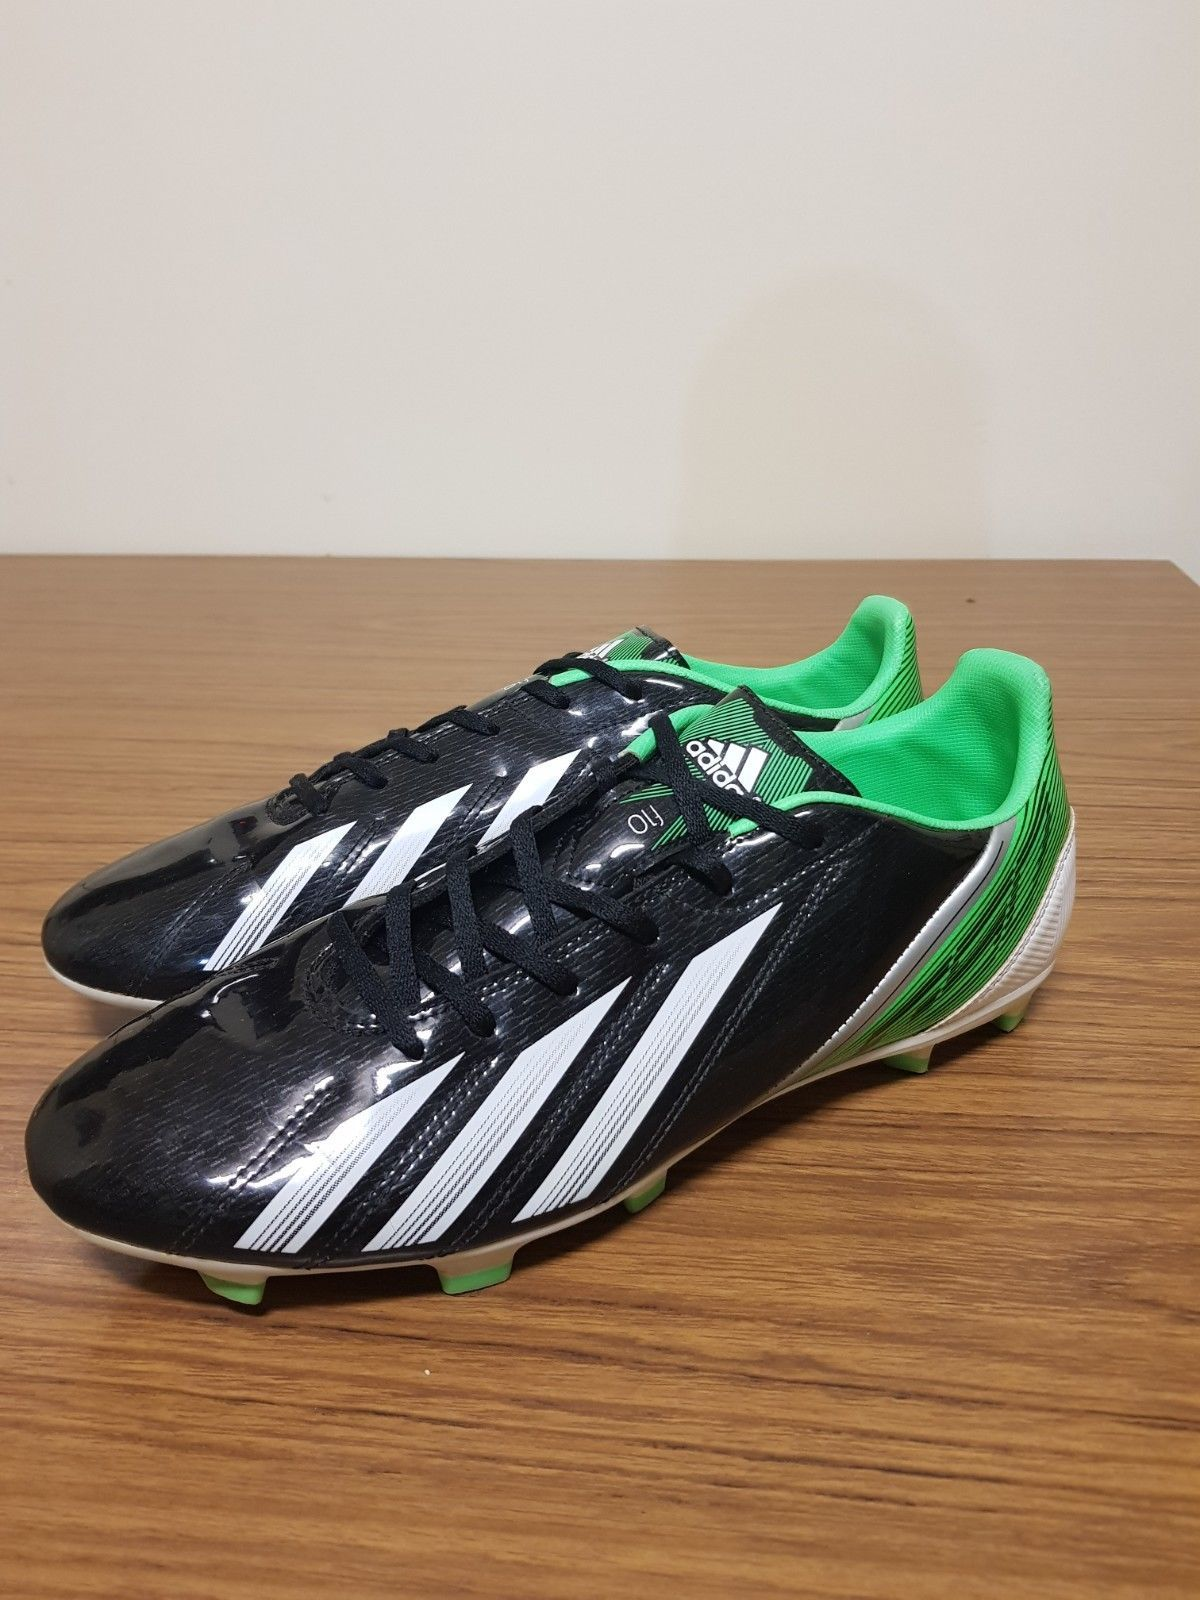 a7751c5c5 Adidas mens sports shoes football/soccer cleats size US10.5 USED (Black &